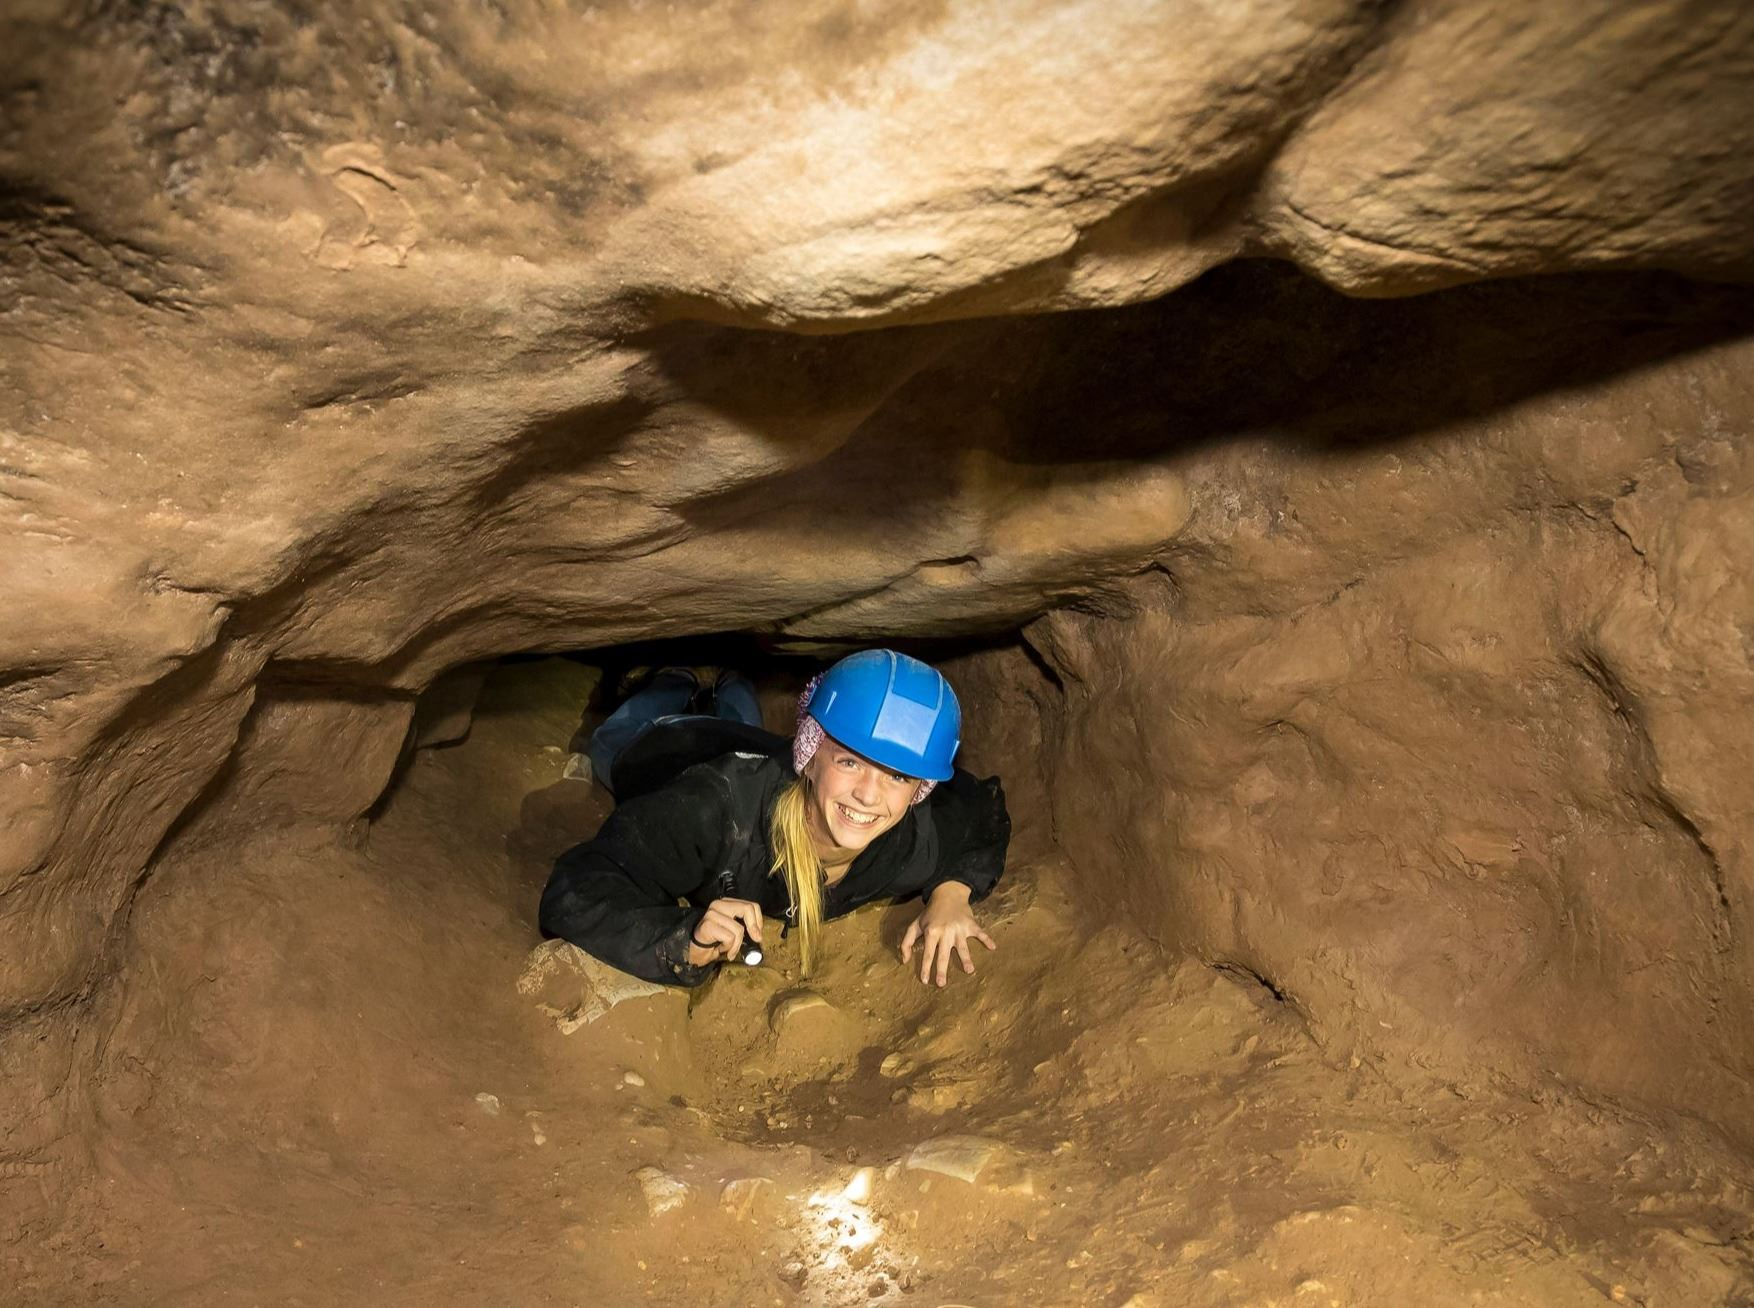 A girl wearing a blue helmet and holding a flashlight is crawling on her belly through a tunnel in a